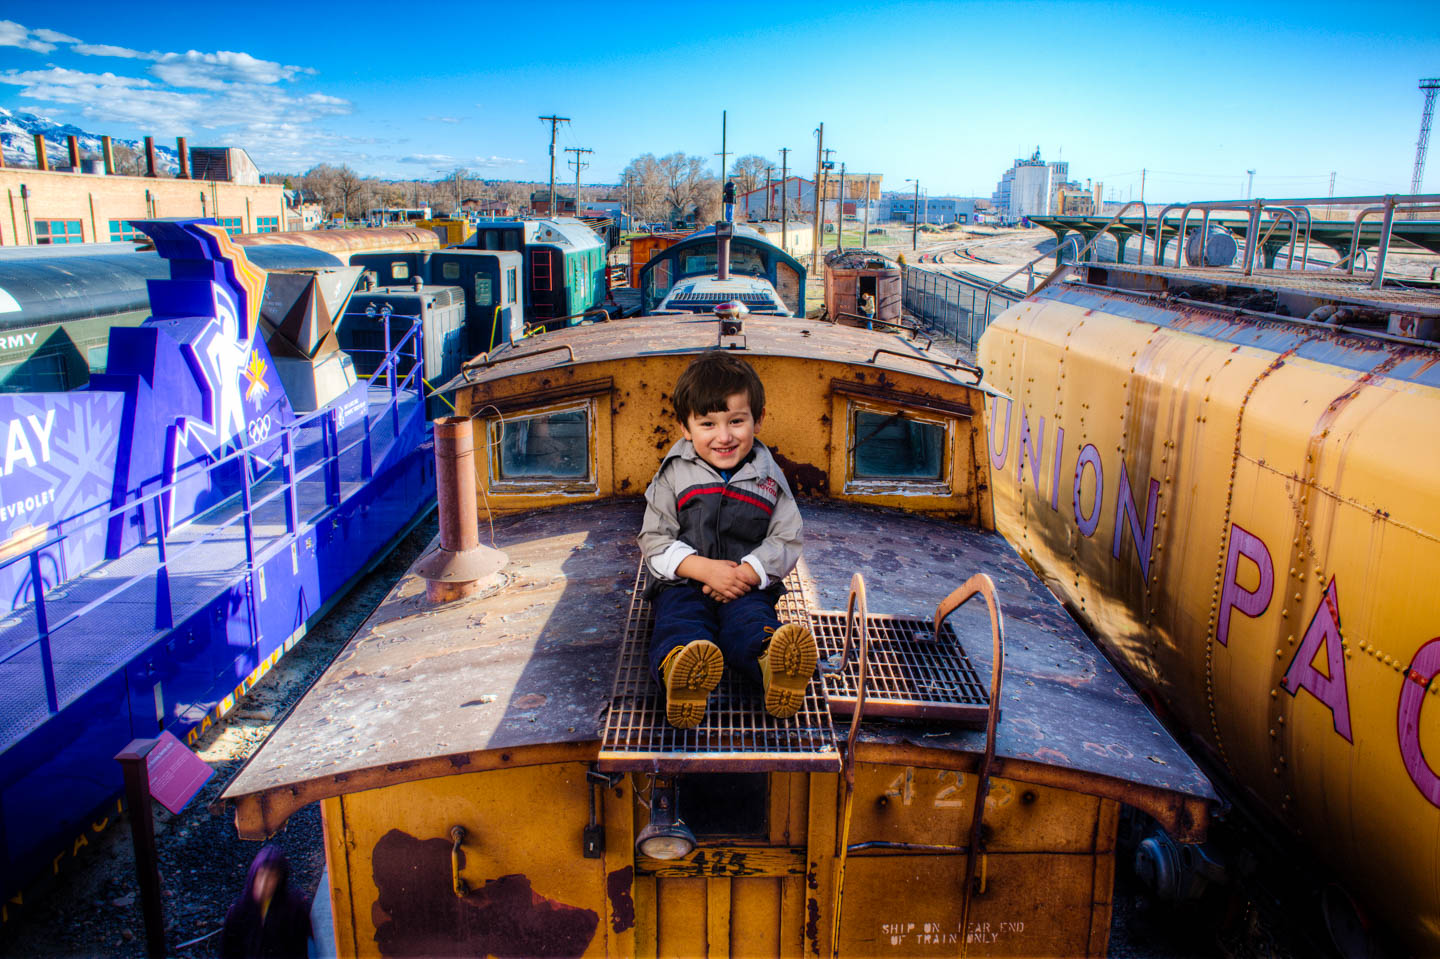 Alexander sits a top a train's caboose thanks to Photoshop